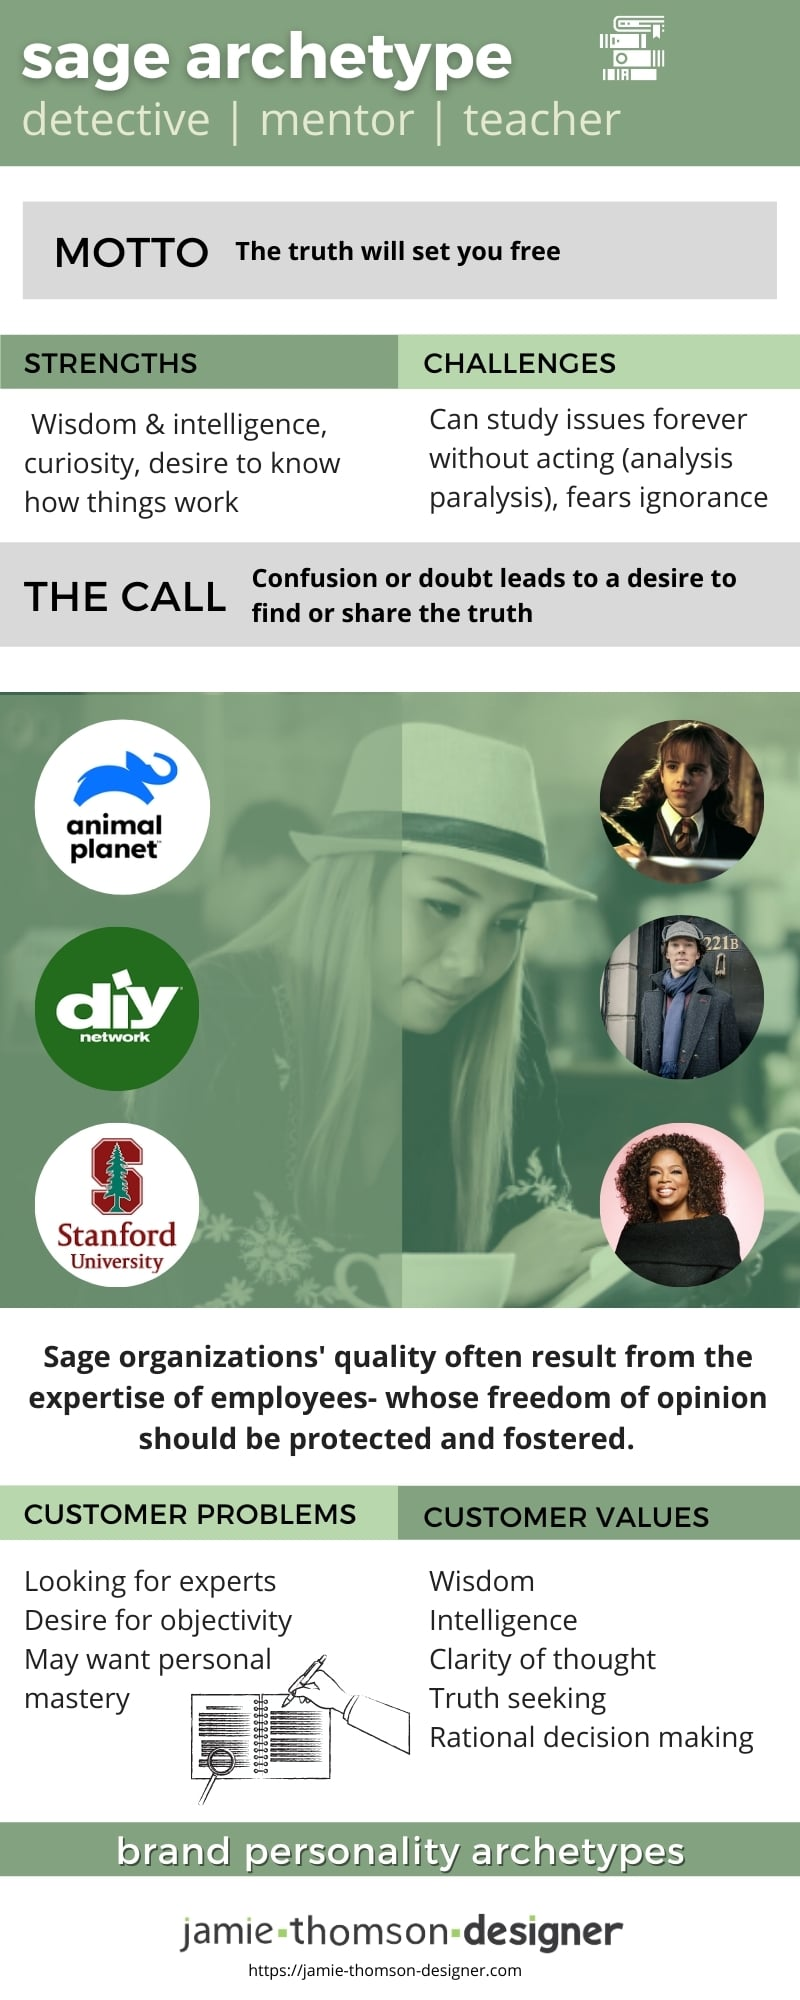 Sage brand archetype reference sheet pin this handy reference from jamie thomson designer